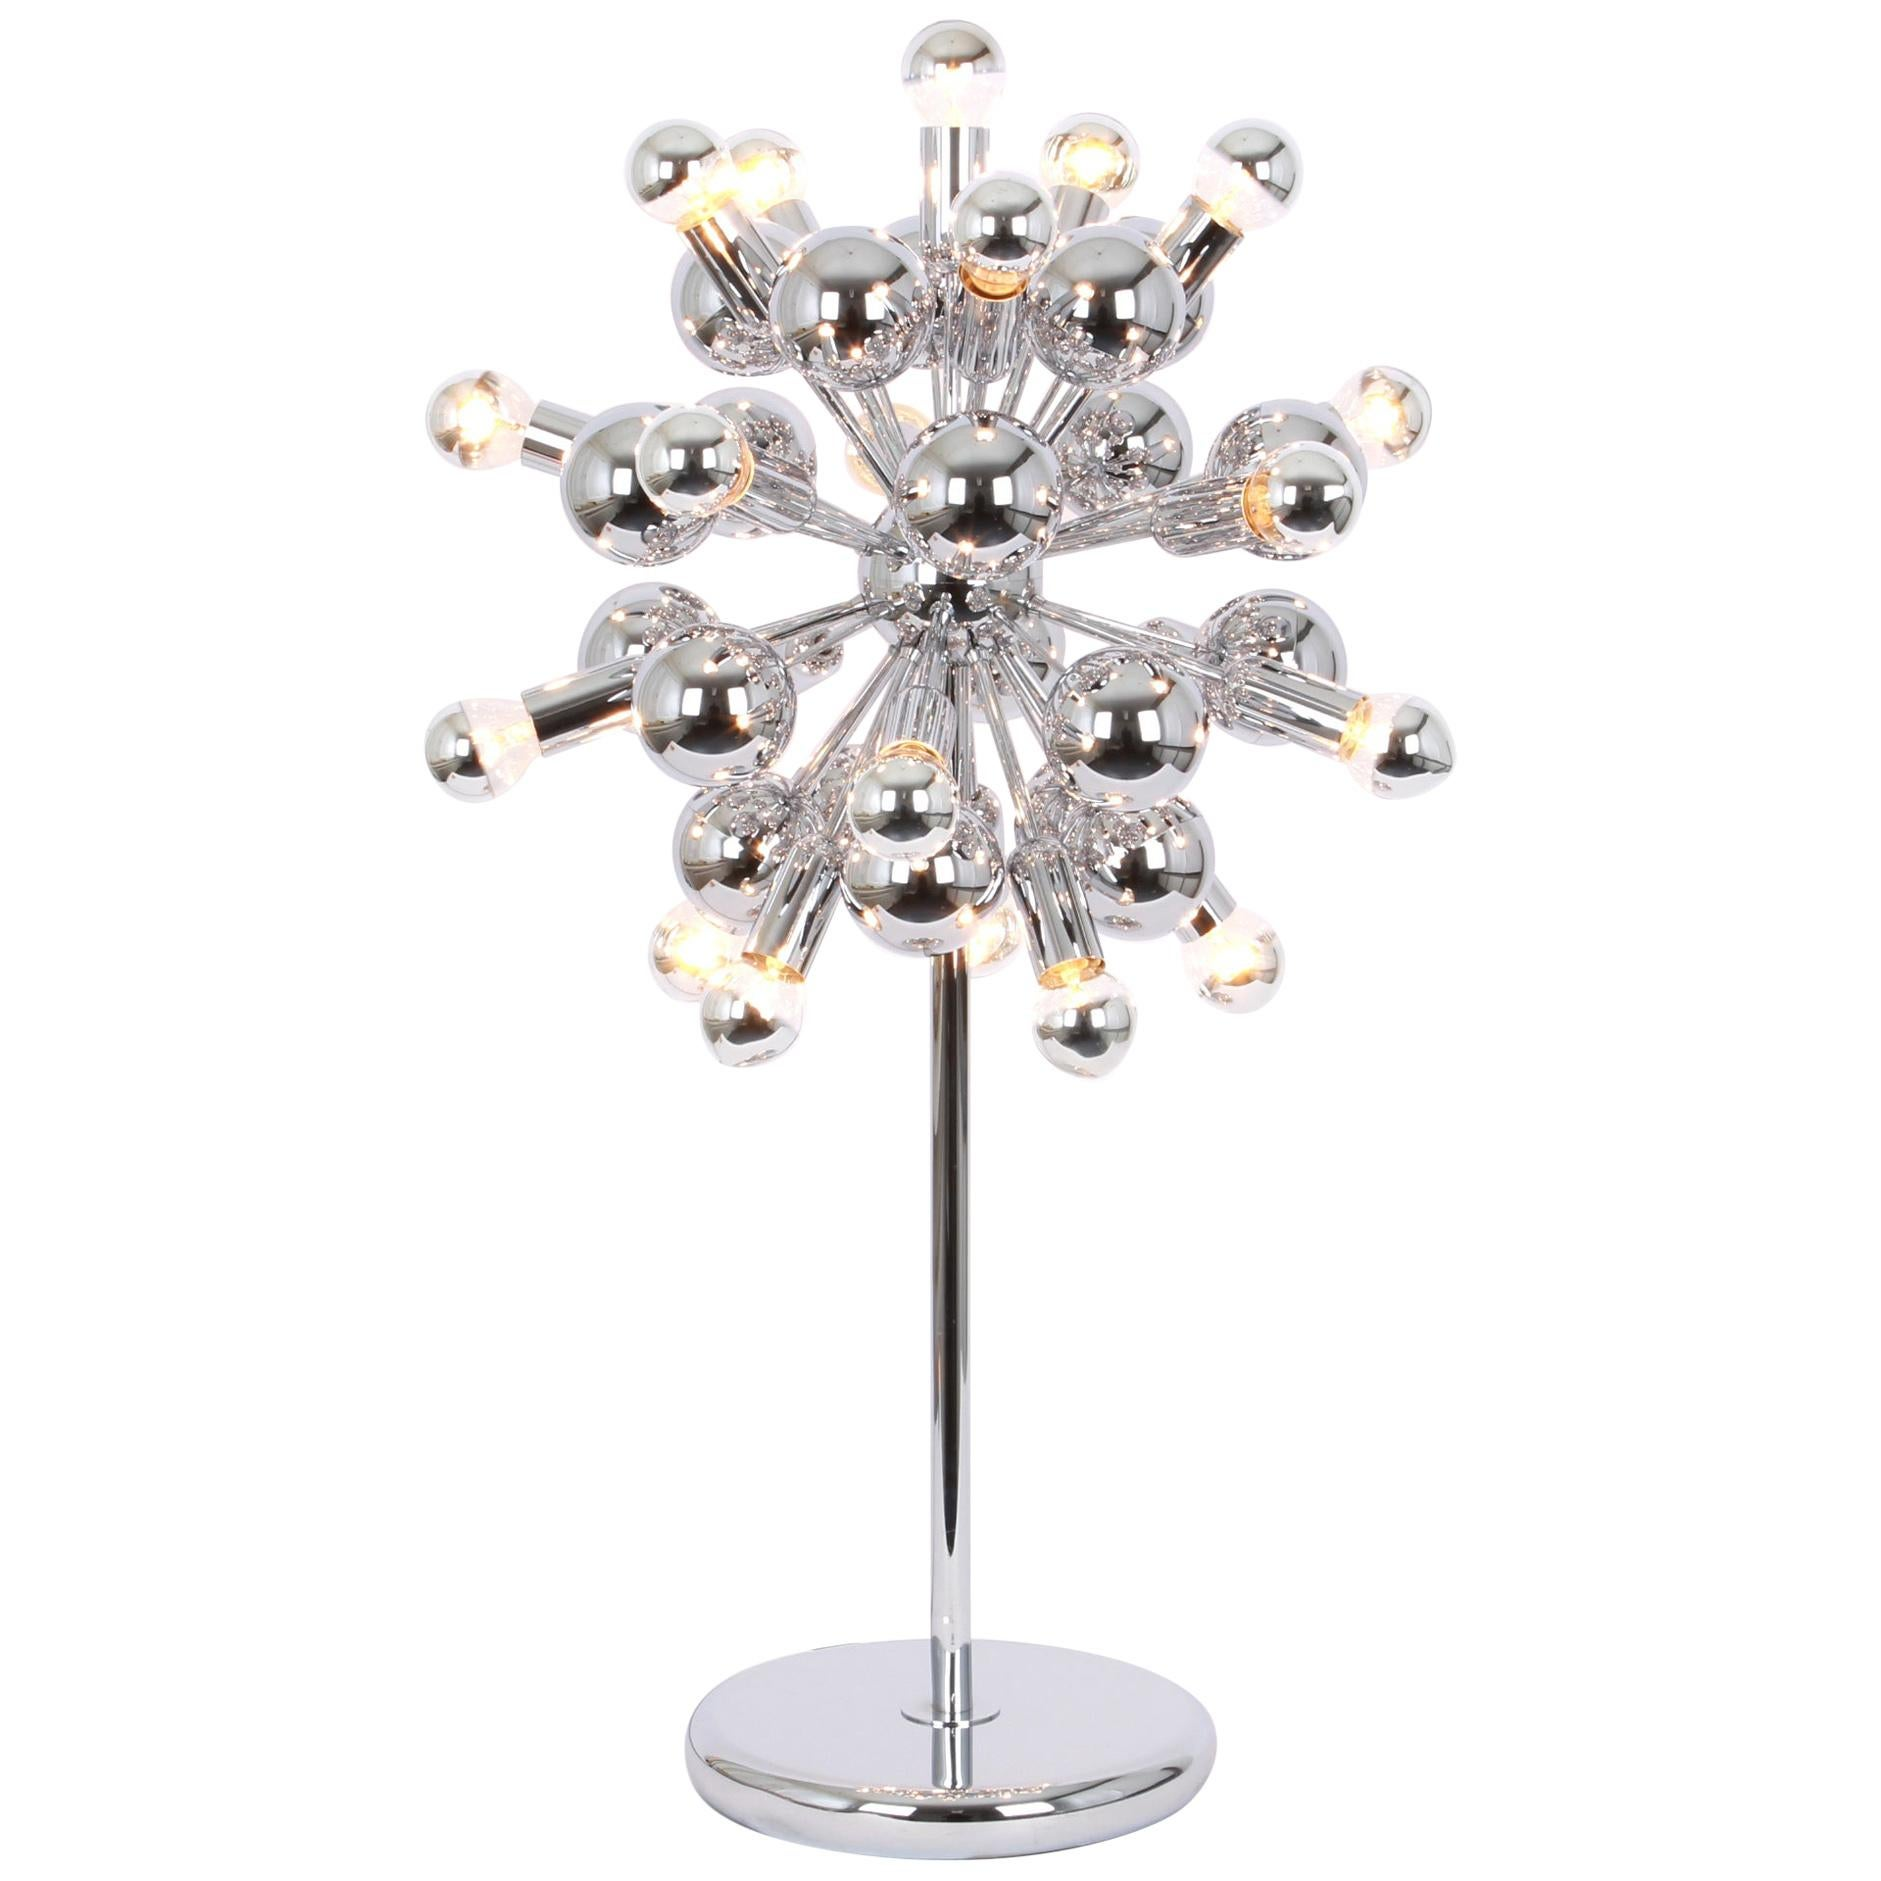 1 of 2 Large Chrome Space Age Sputnik Table Lamps by Cosack, Germany, 1970s